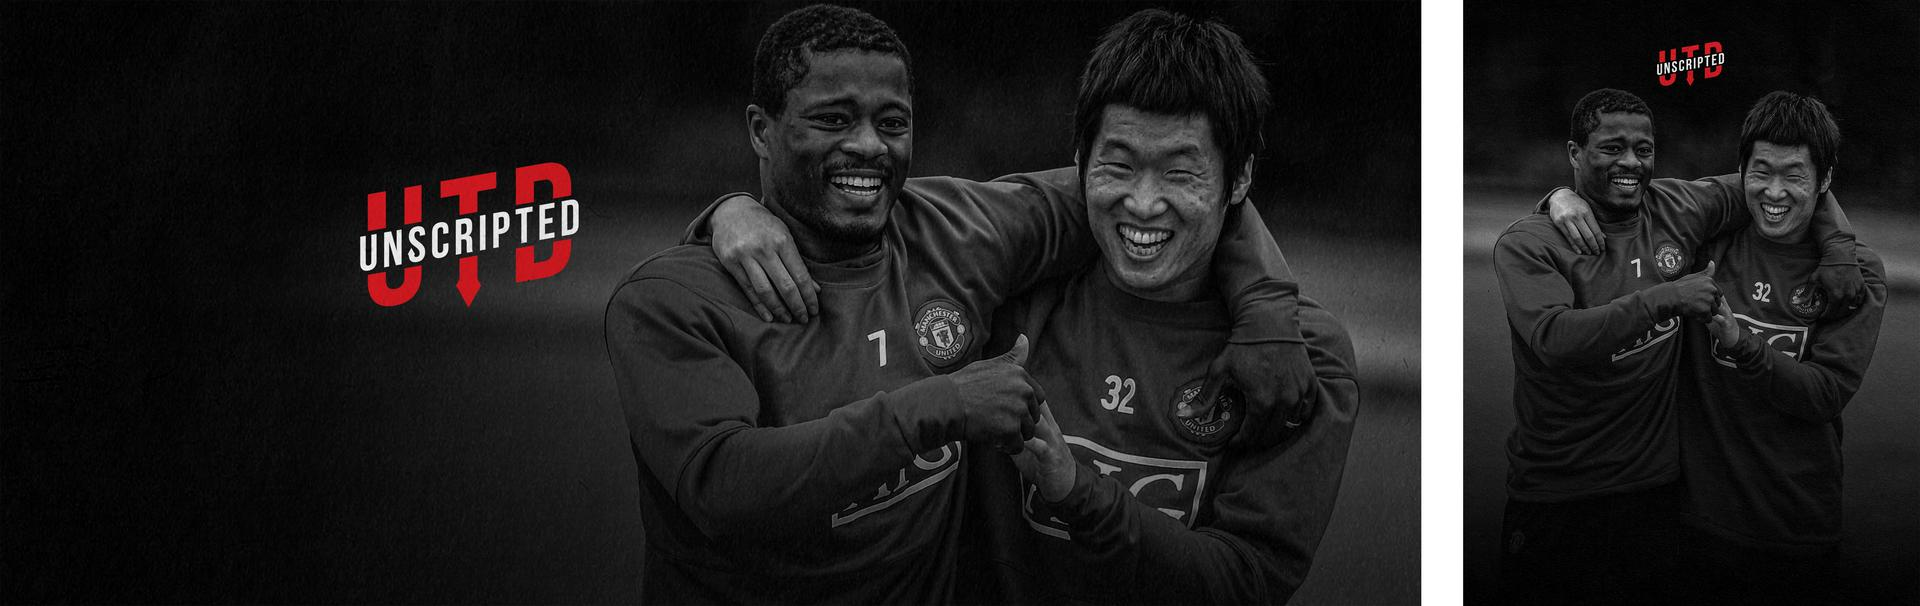 Promotional 。。image for UTD Unscripted featuring Patrice Evra and Ji-sung Park